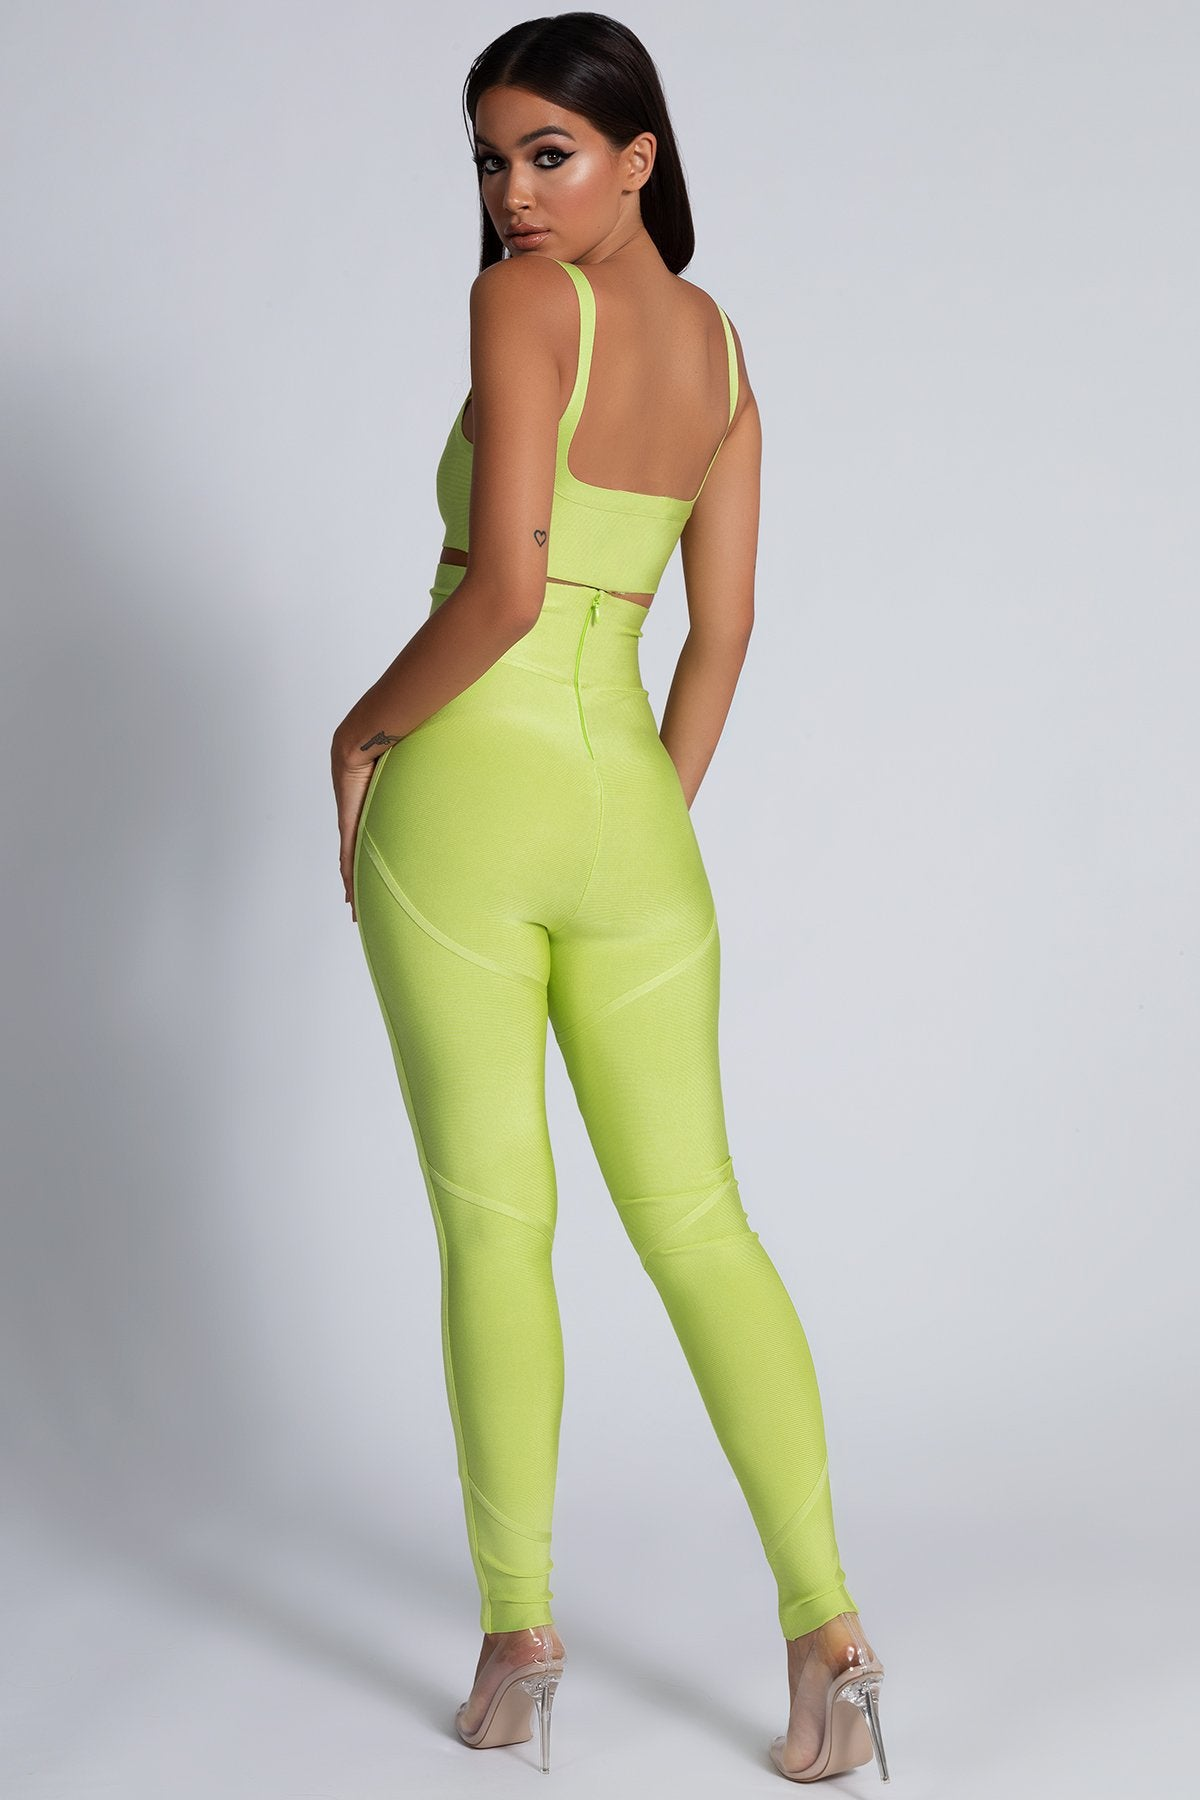 60% discount better price for the latest Amanda Bandage Crop Top - Lime Green